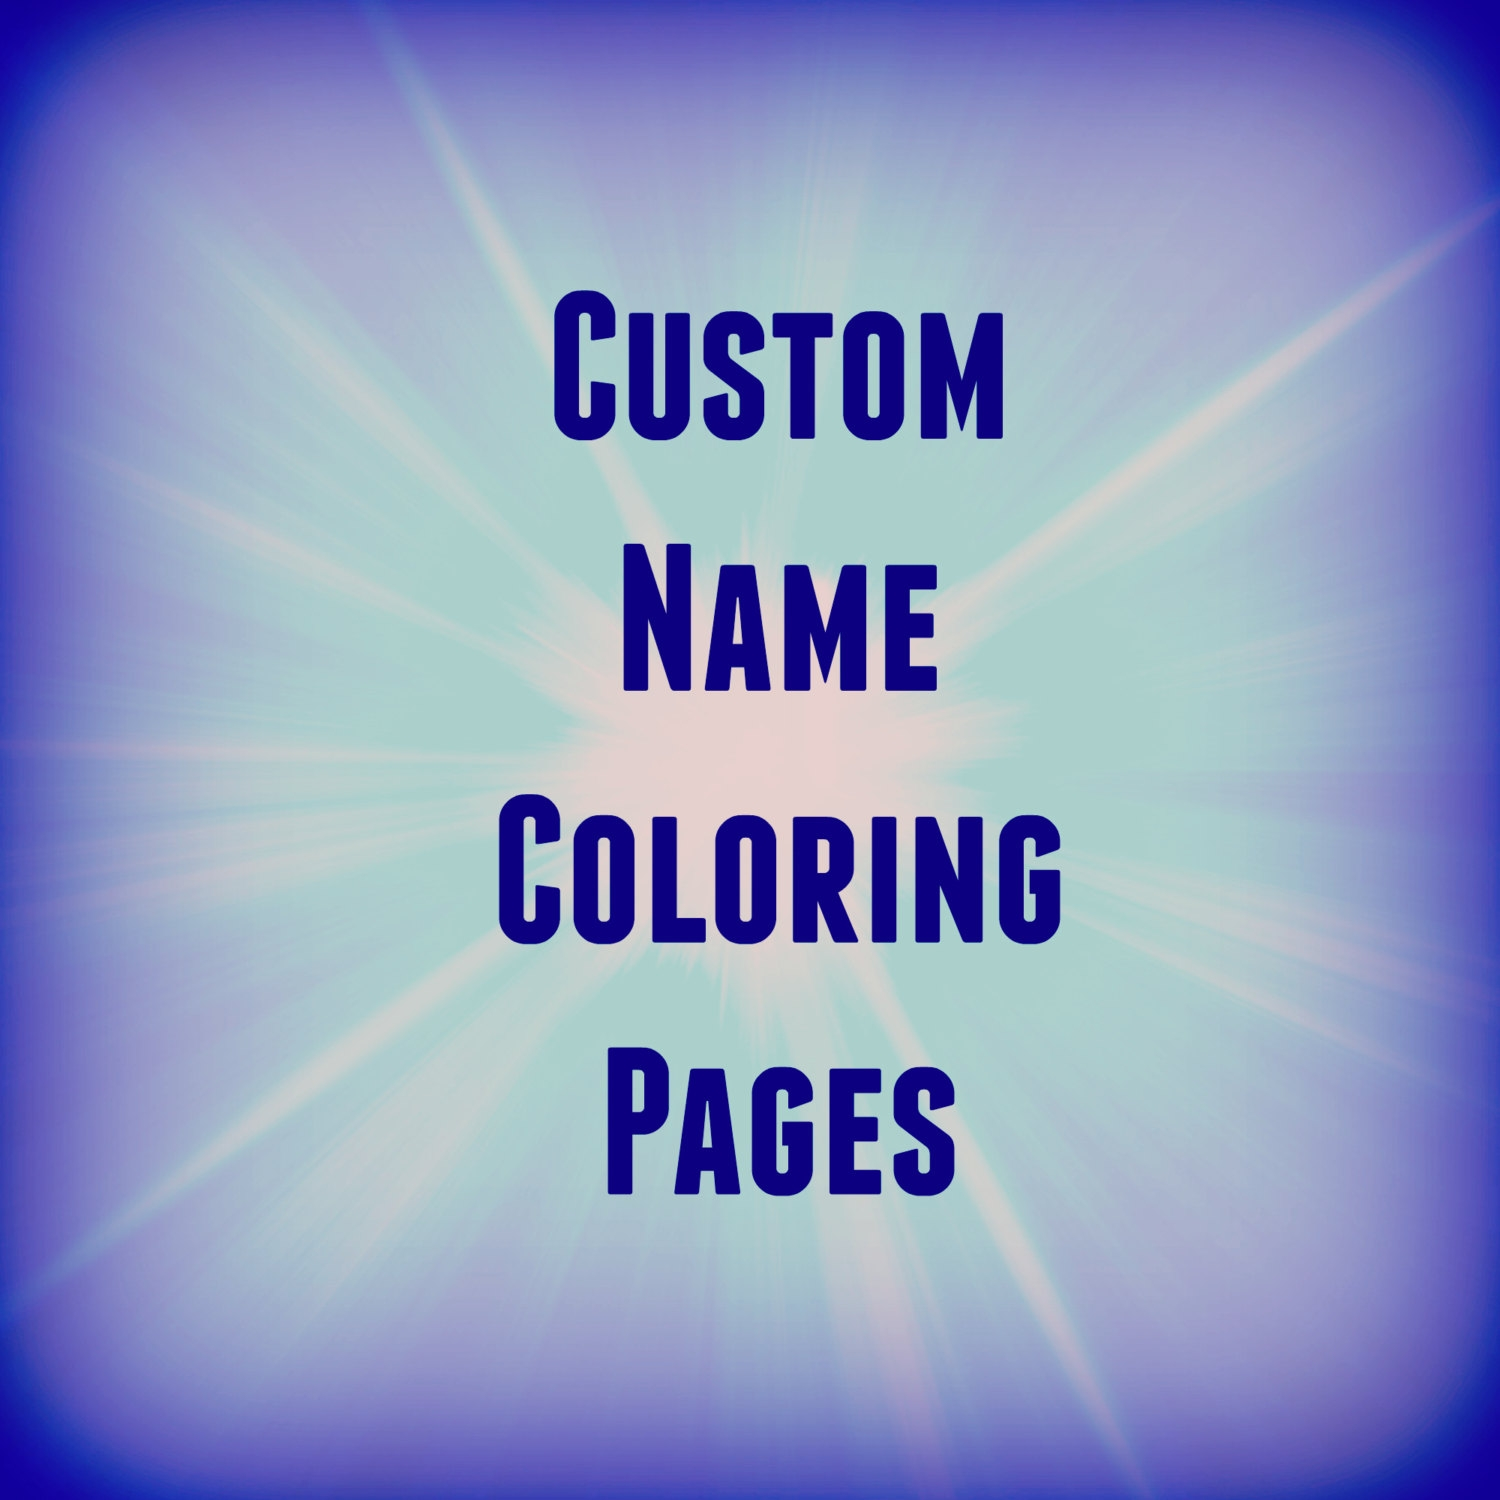 25 Name Coloring Pages Selection FREE COLORING PAGES Part 2